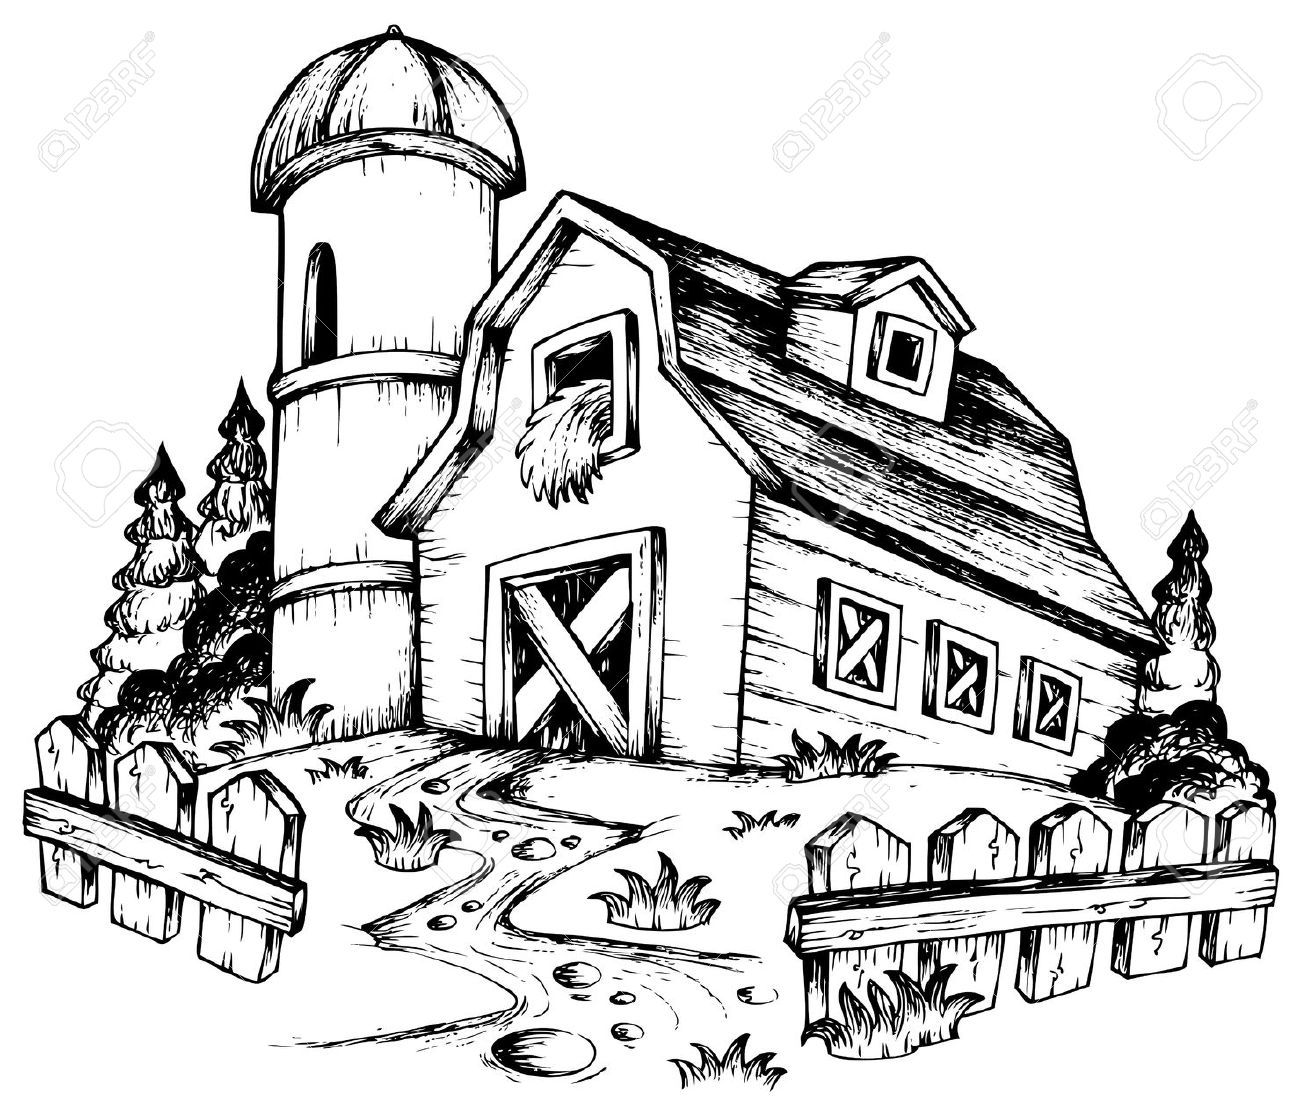 explore farm theme image search engine and more - Barns Coloring Pages Farm Silos